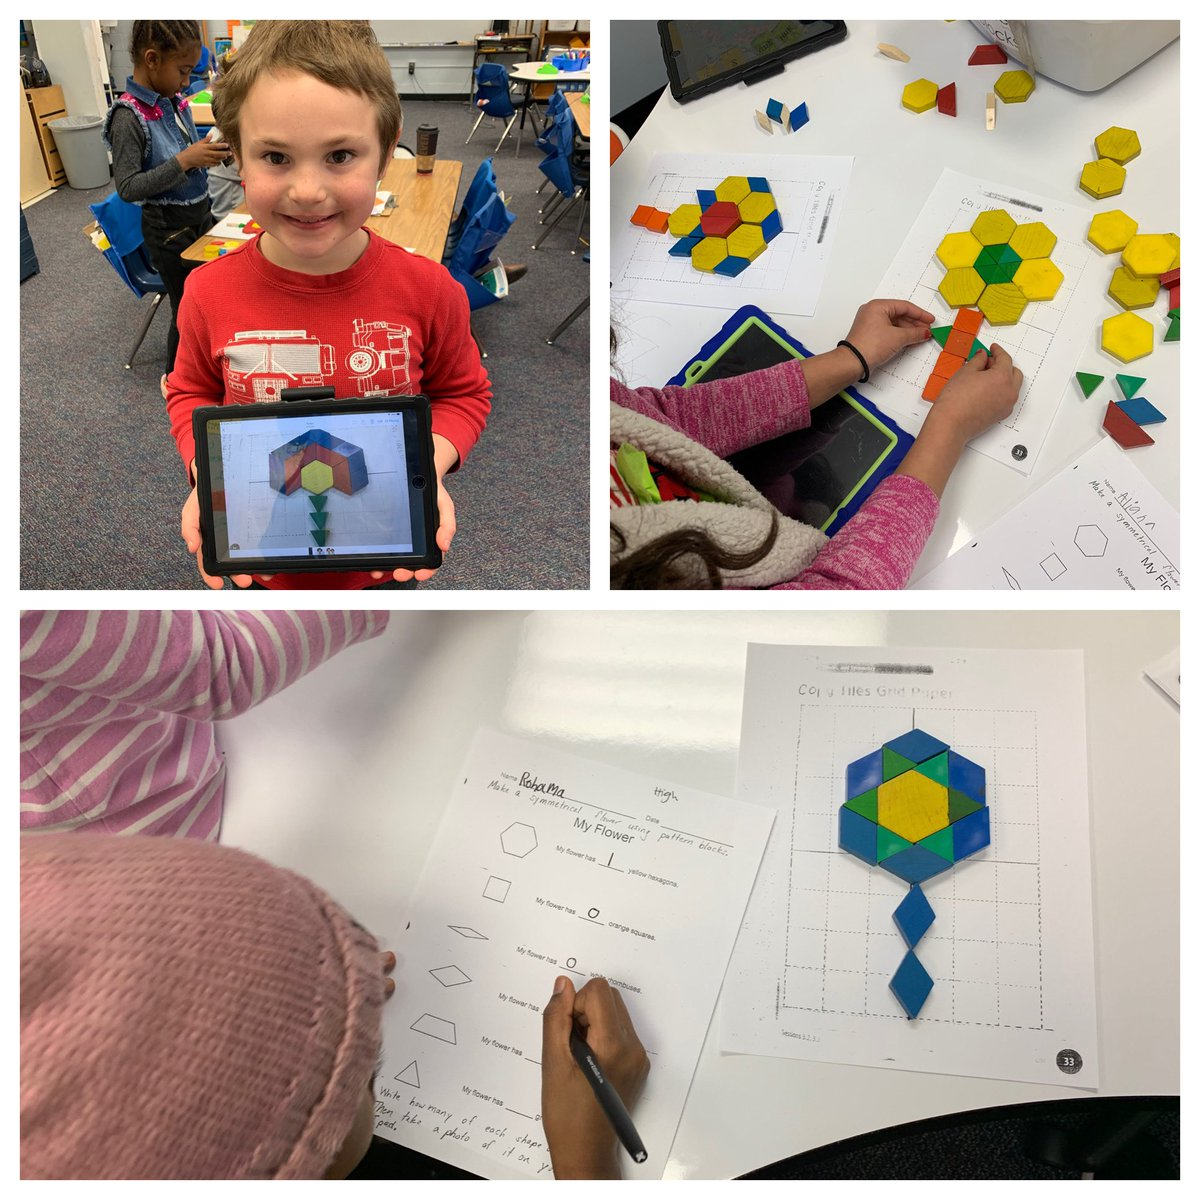 today-we-applied-what-we-learned-about-symmetry-to-create-symmetrical-flowers-with-pattern-blocks-campbellaps-https-t-co-pqqpff6kuf